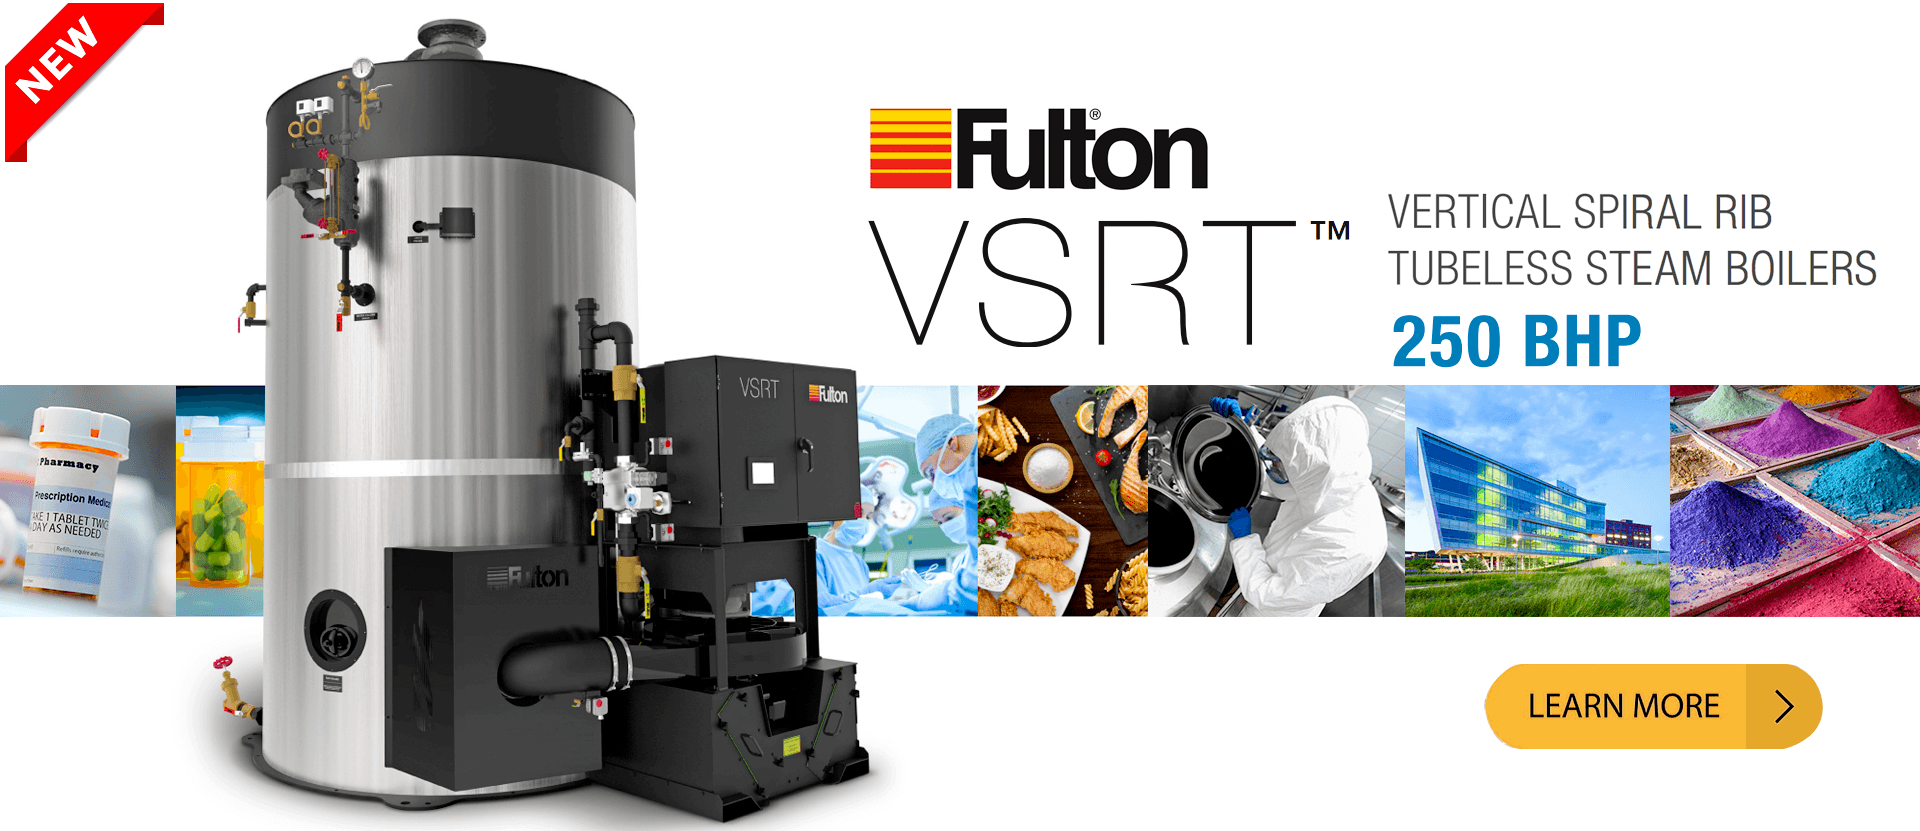 Fulton VSRT - Applied Technologies of New York, Inc.